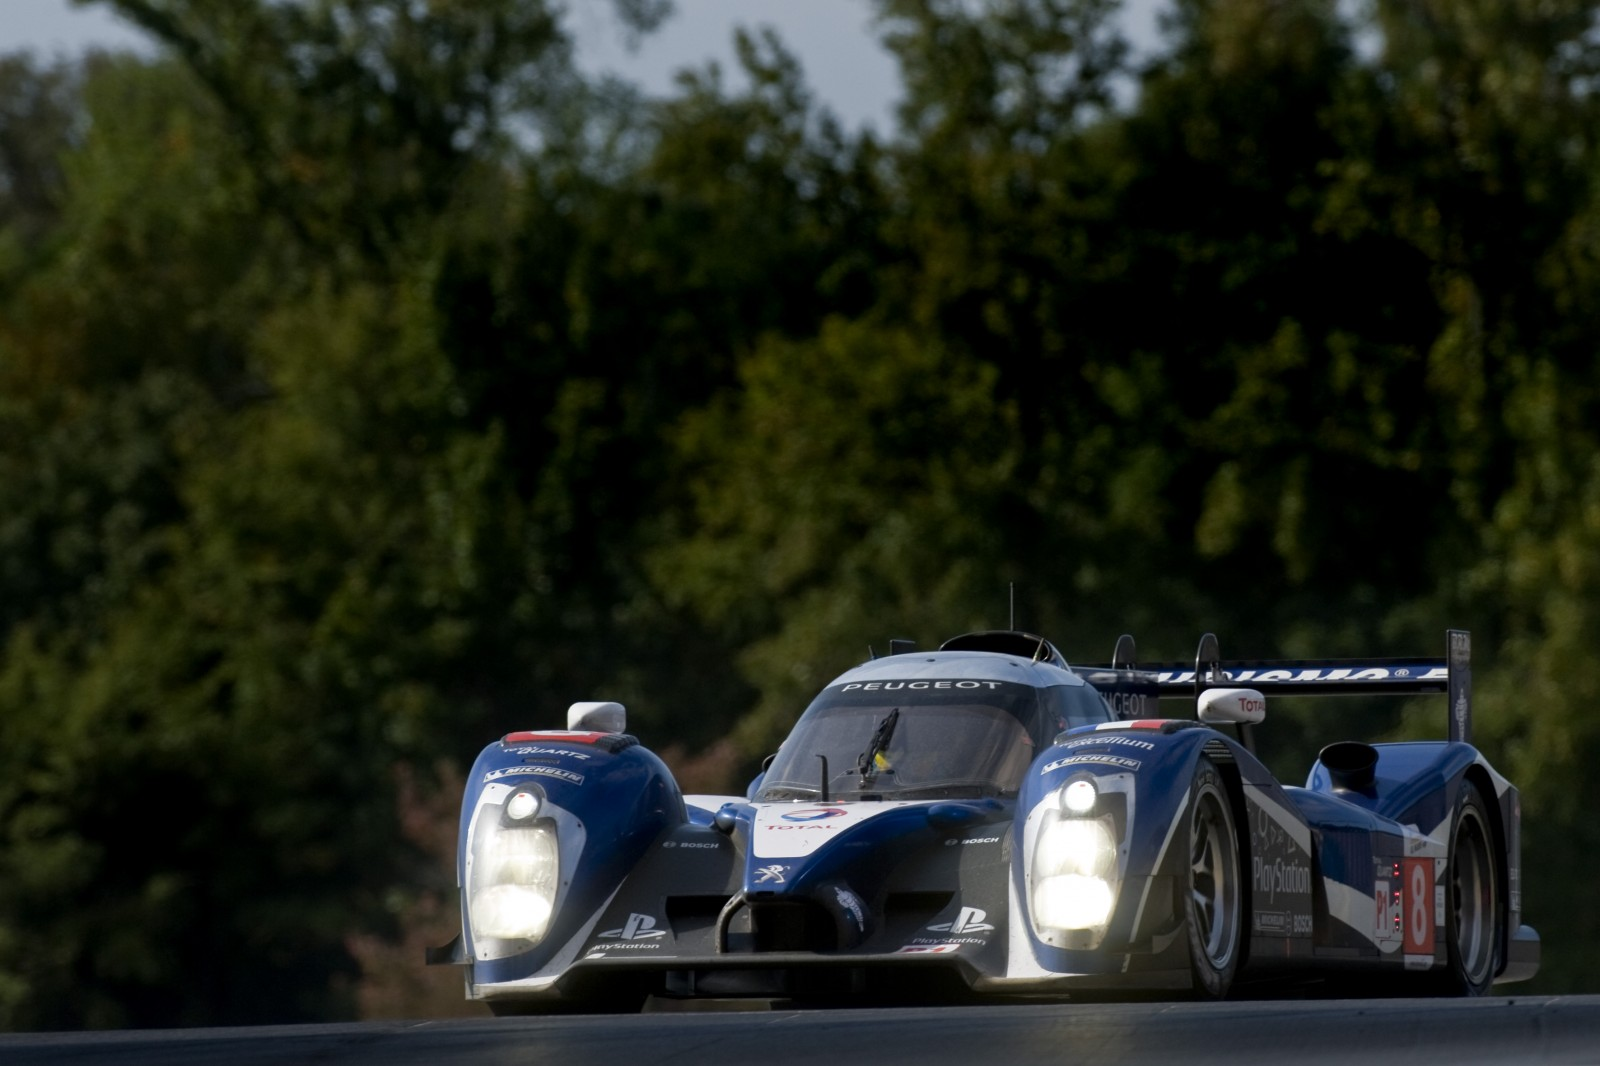 Stephane Sarrazin's time with Peugeot saw him take two Le Mans Series titles Photo: Peugeot Media